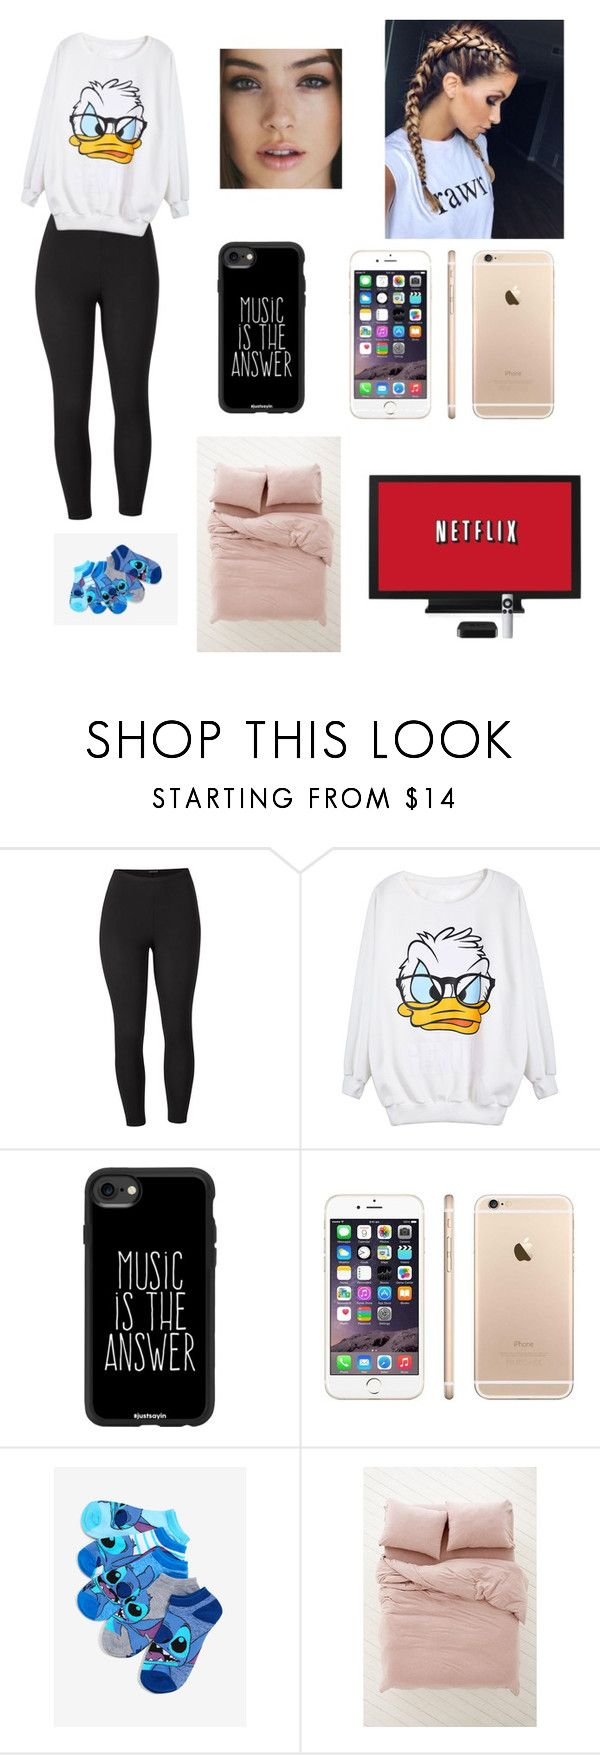 """Untitled #31"" by ameliadrury on Polyvore featuring Venus, Casetify, Urban Outfitters and plus size clothing"